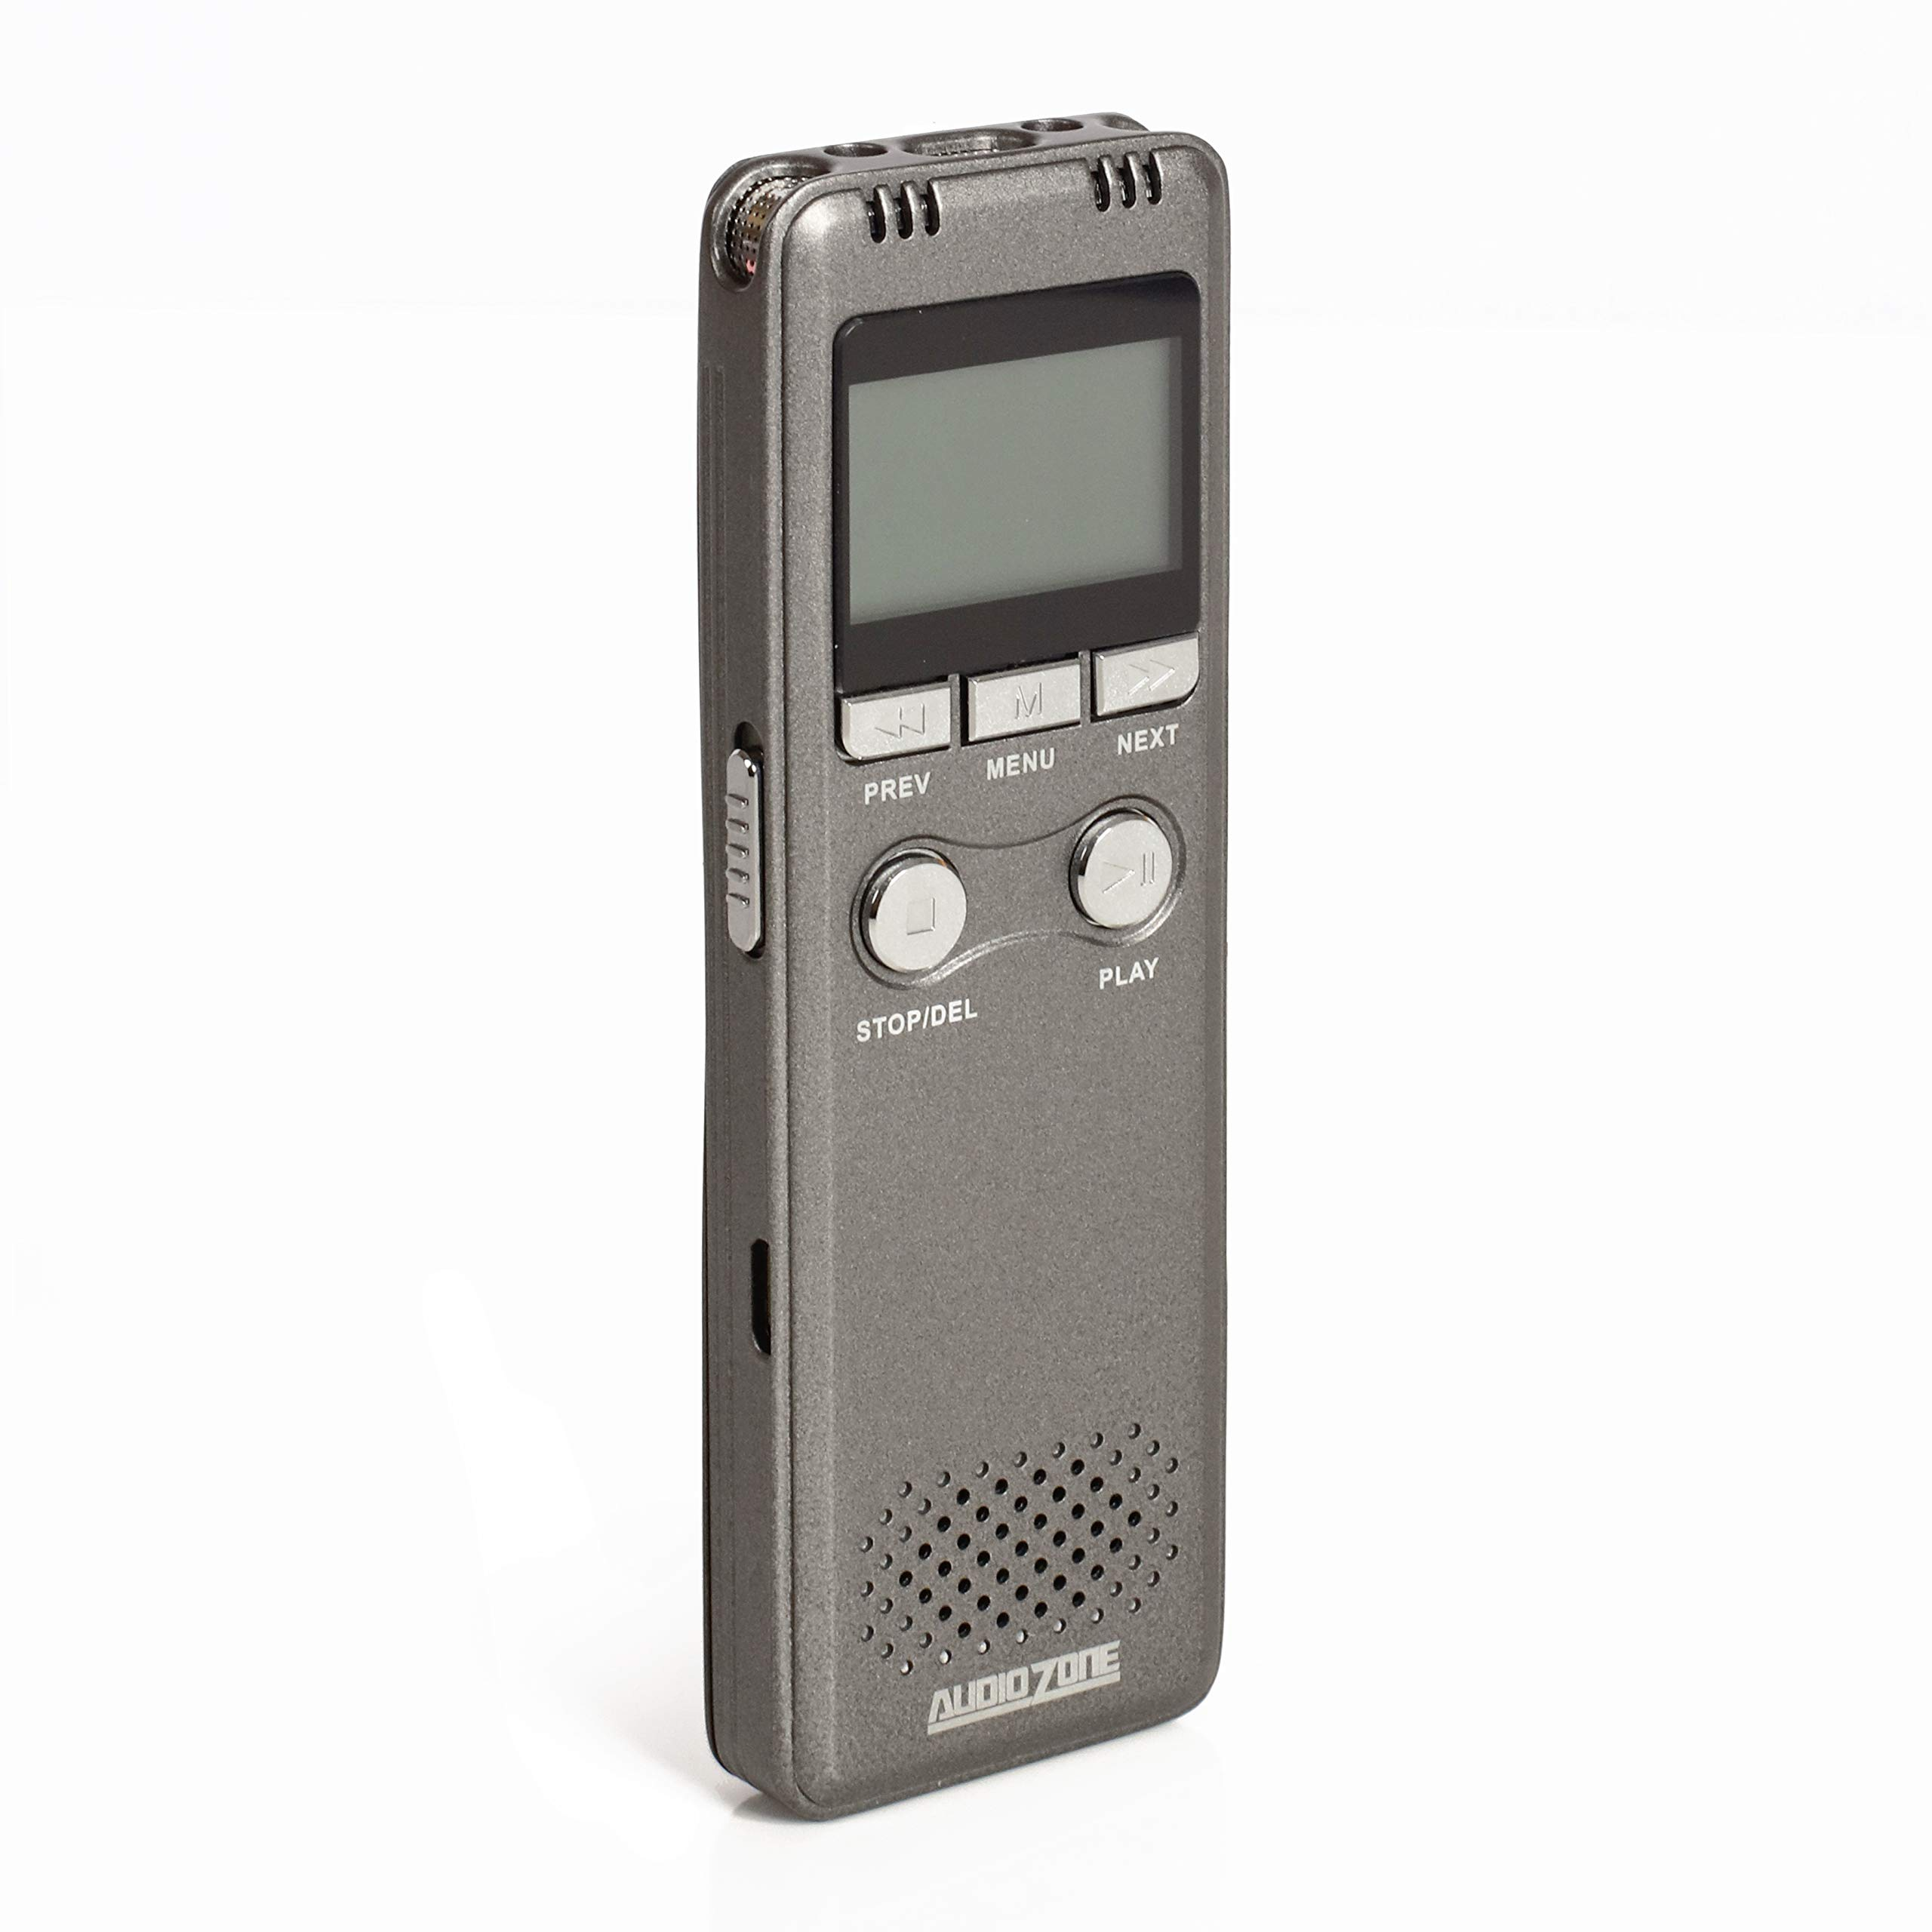 Audio Zone 8GB Digital Voice Recorder, Lightweight and Crystal Clear. Designed for Kids and Adults